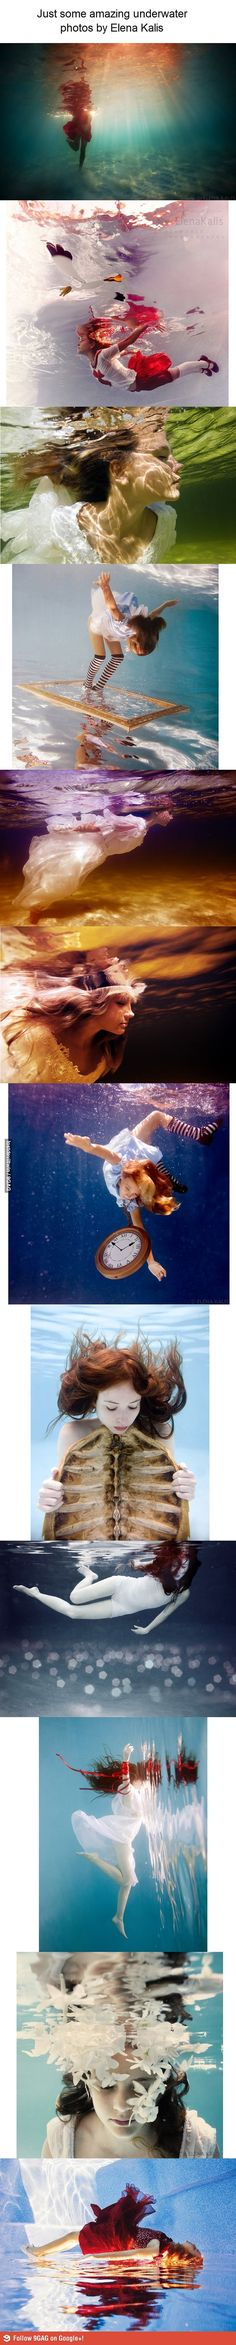 Underwater photography by Elena Kalis.